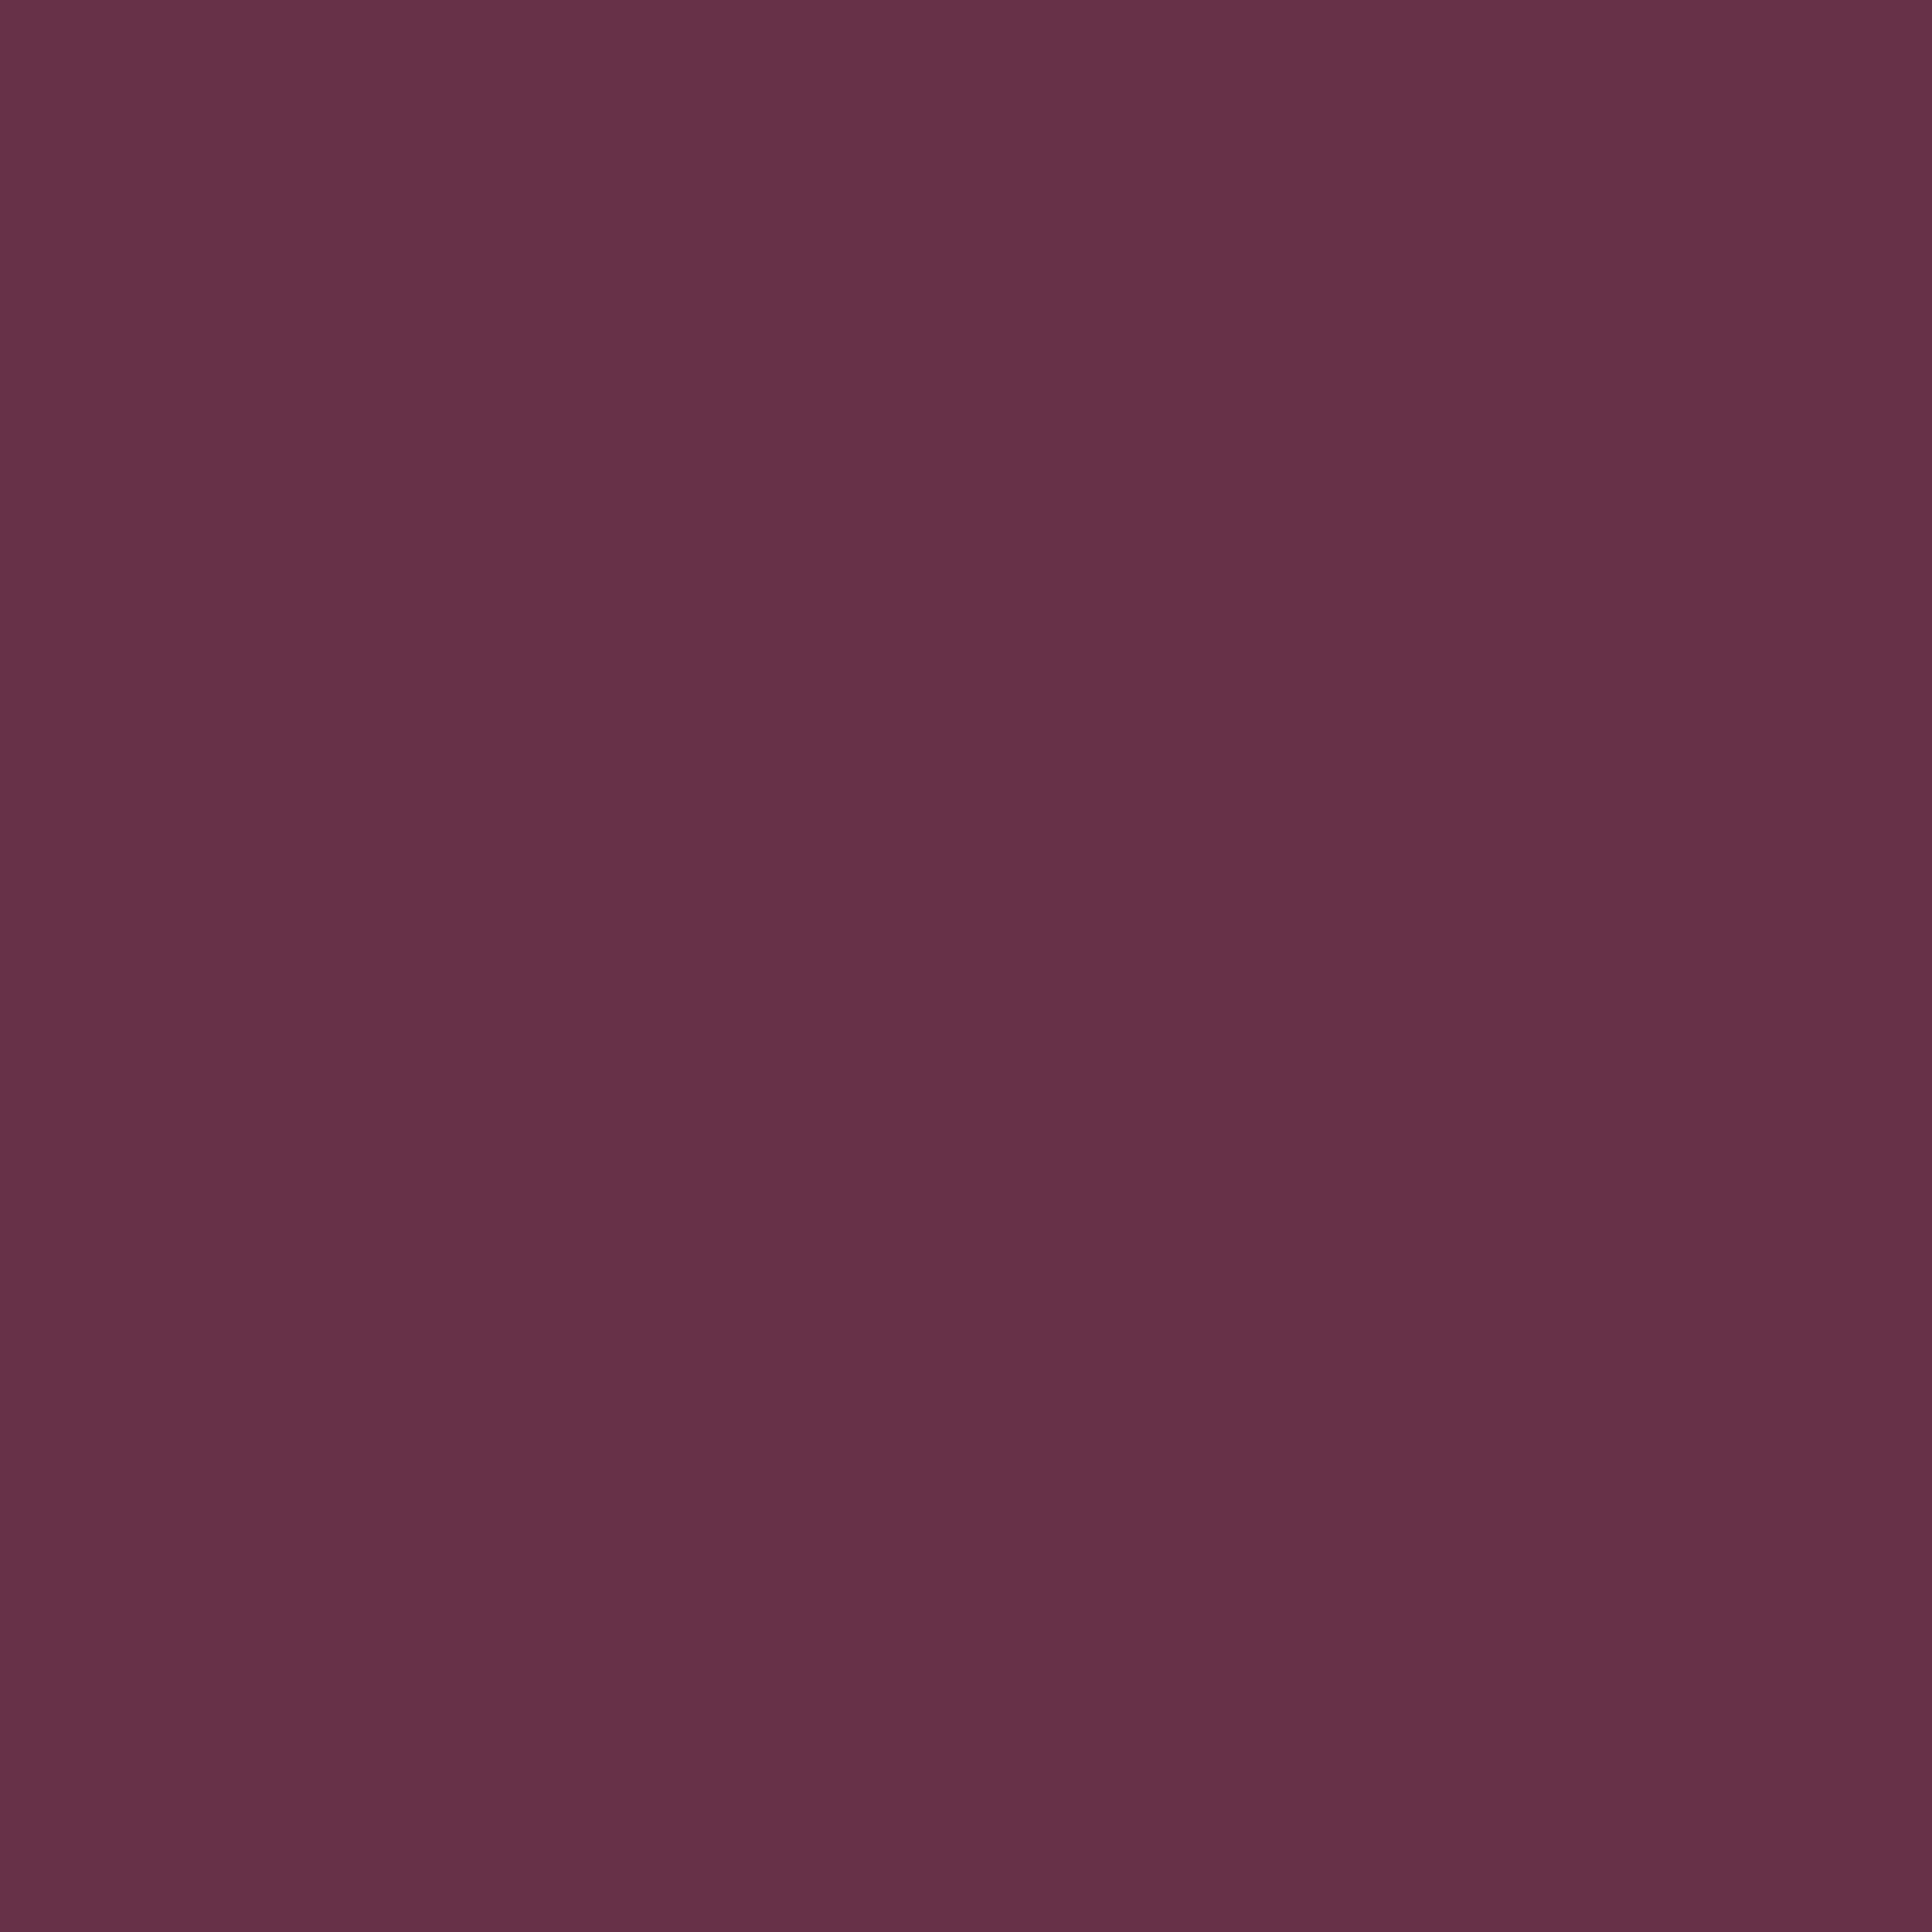 2048x2048 Wine Dregs Solid Color Background